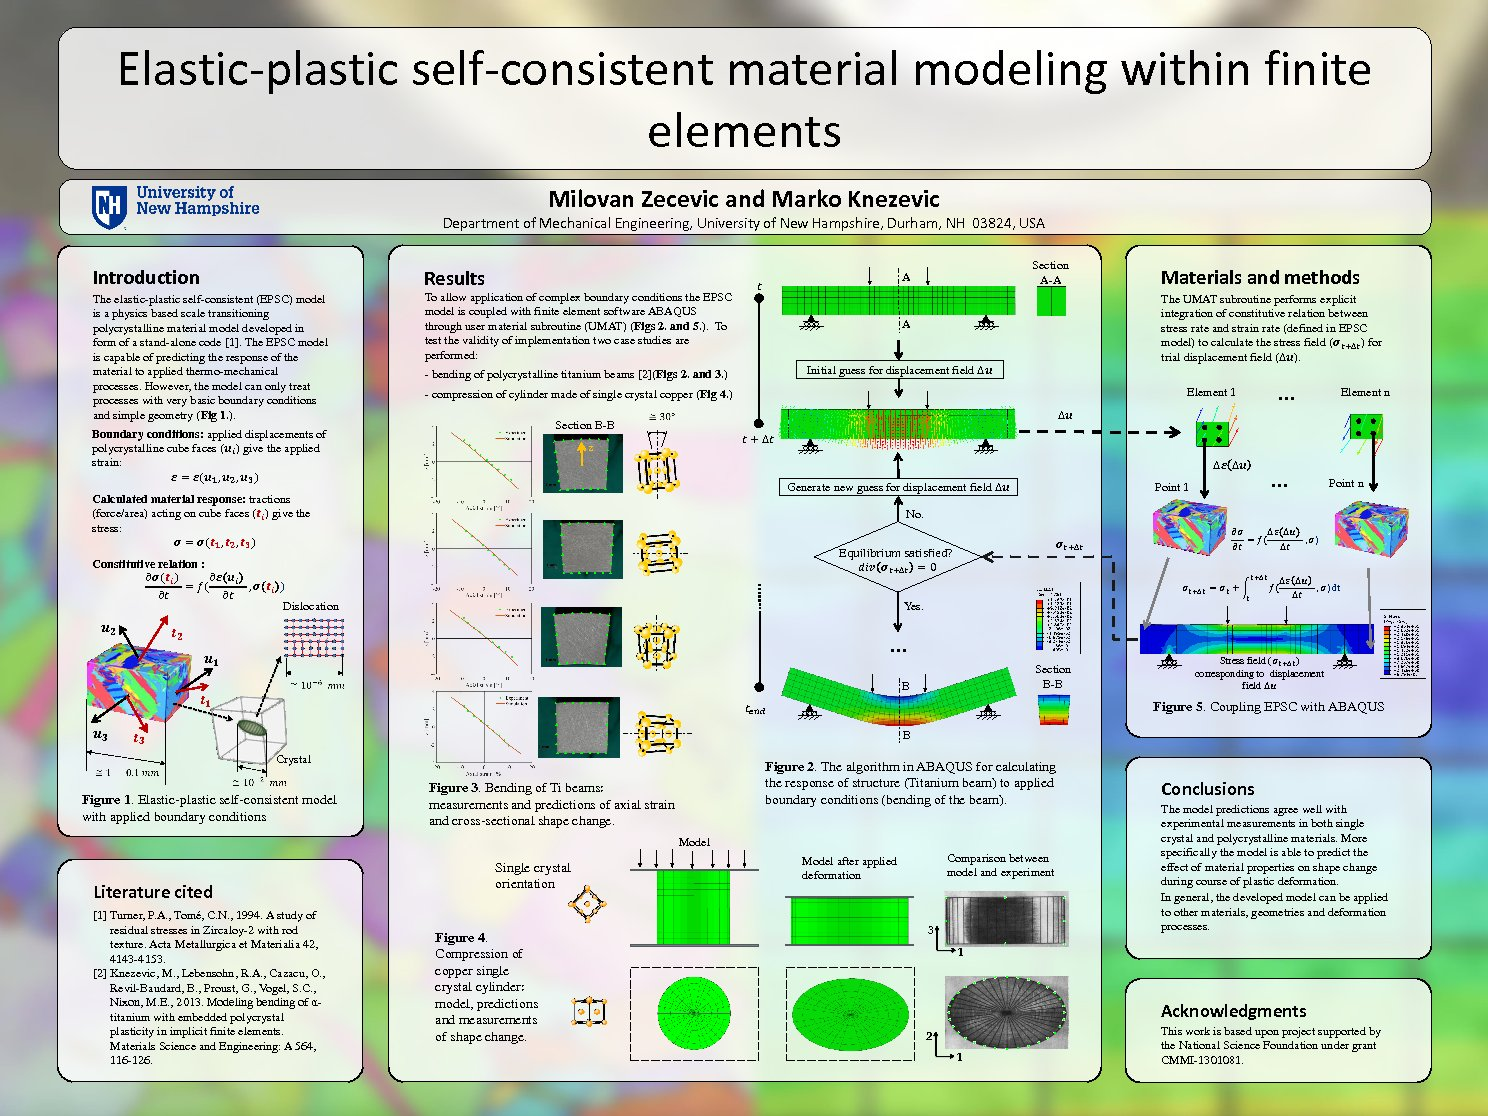 Elastic-Plastic Self-Consistent Material Modeling Within Finite Elements by mz2